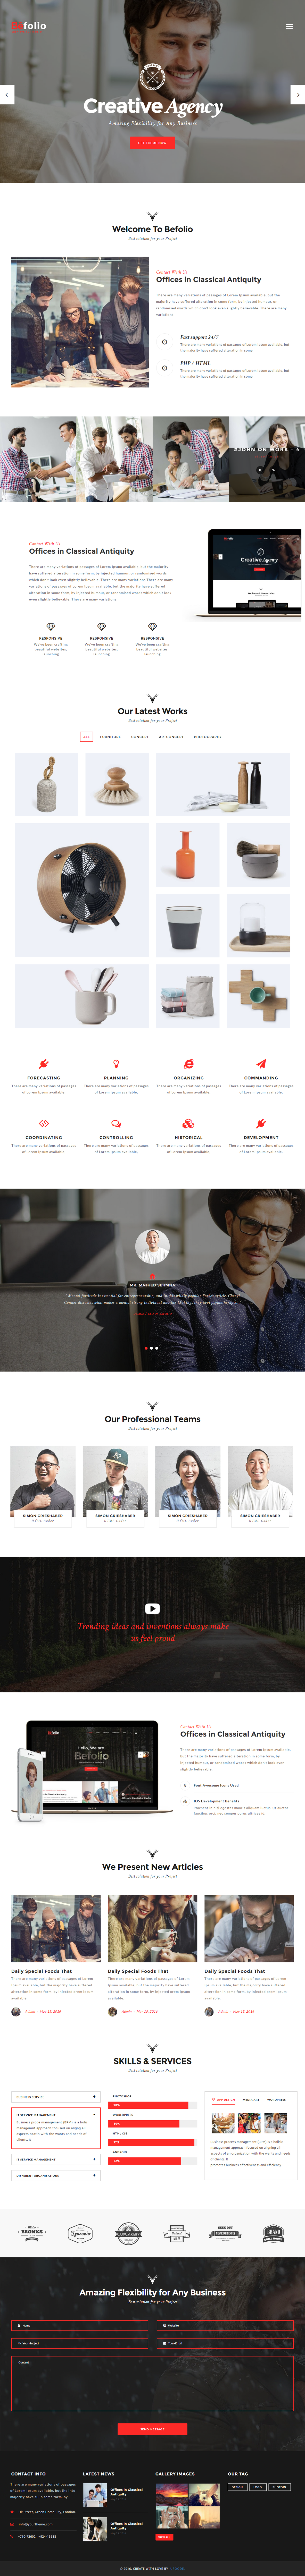 Befolio is a minimal, creative Multipurpose HTML template. Once you found Befolio, you'll realize this is the monochrome template you are searching for. Comes with 11 stunning Pre-defined Homepages, Befolio fits for a range of business & corporation like fashion store, photographer, media agency, web studios, designers, freelancers, Event, marketing, artistic agencies.